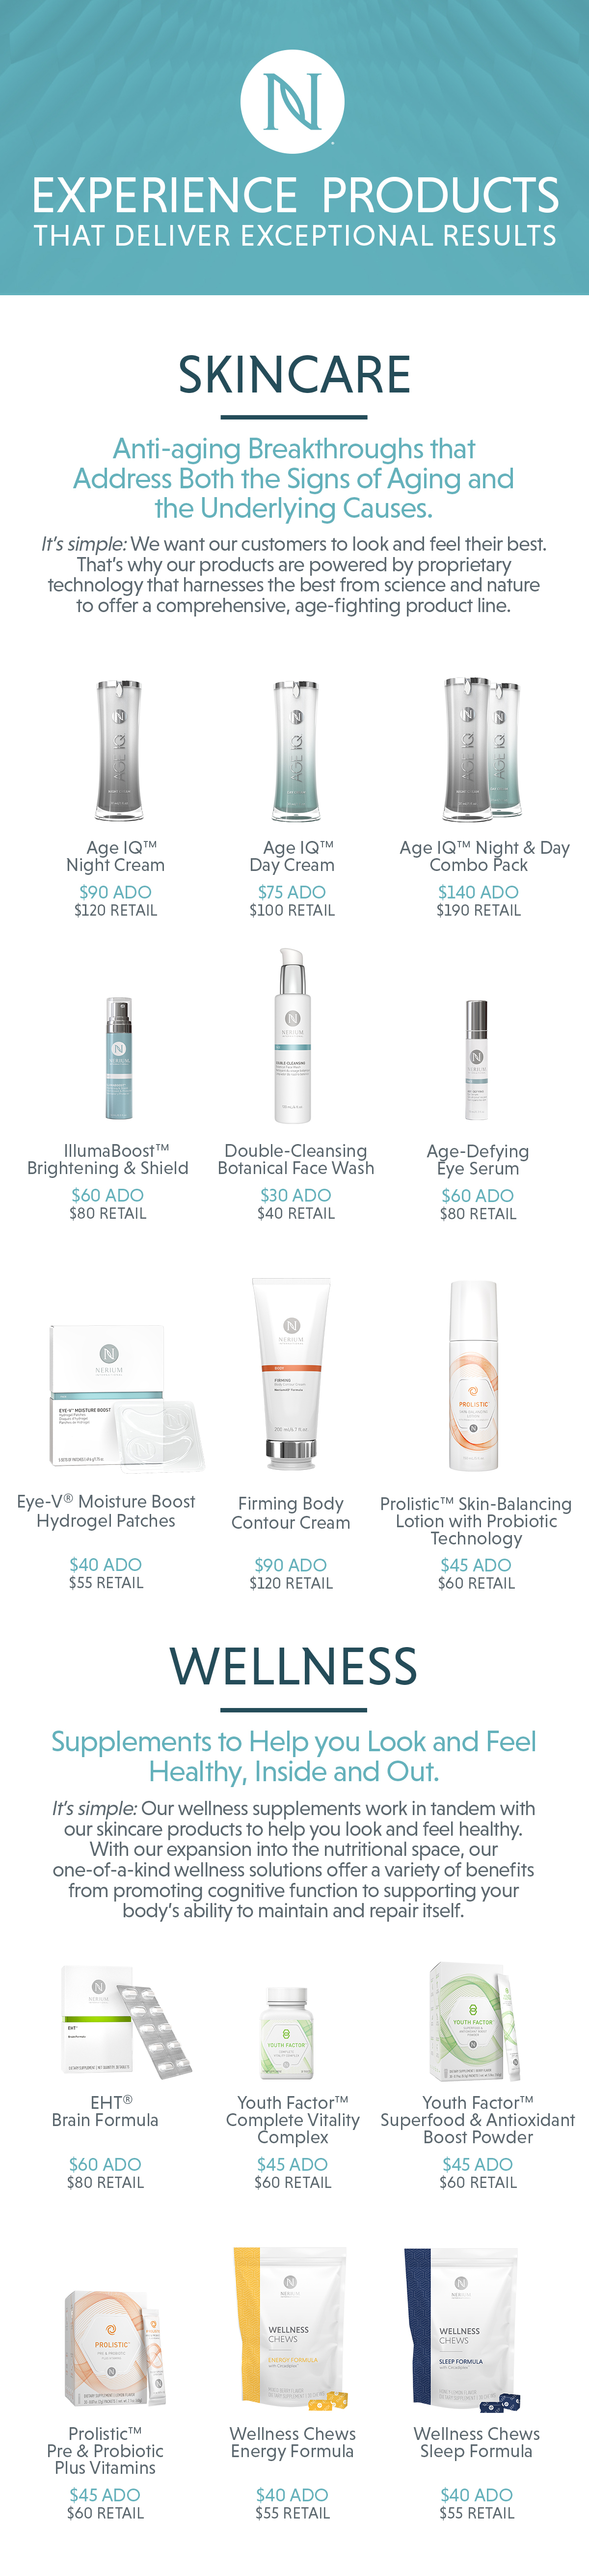 Age-fighting skincare and wellness solutions